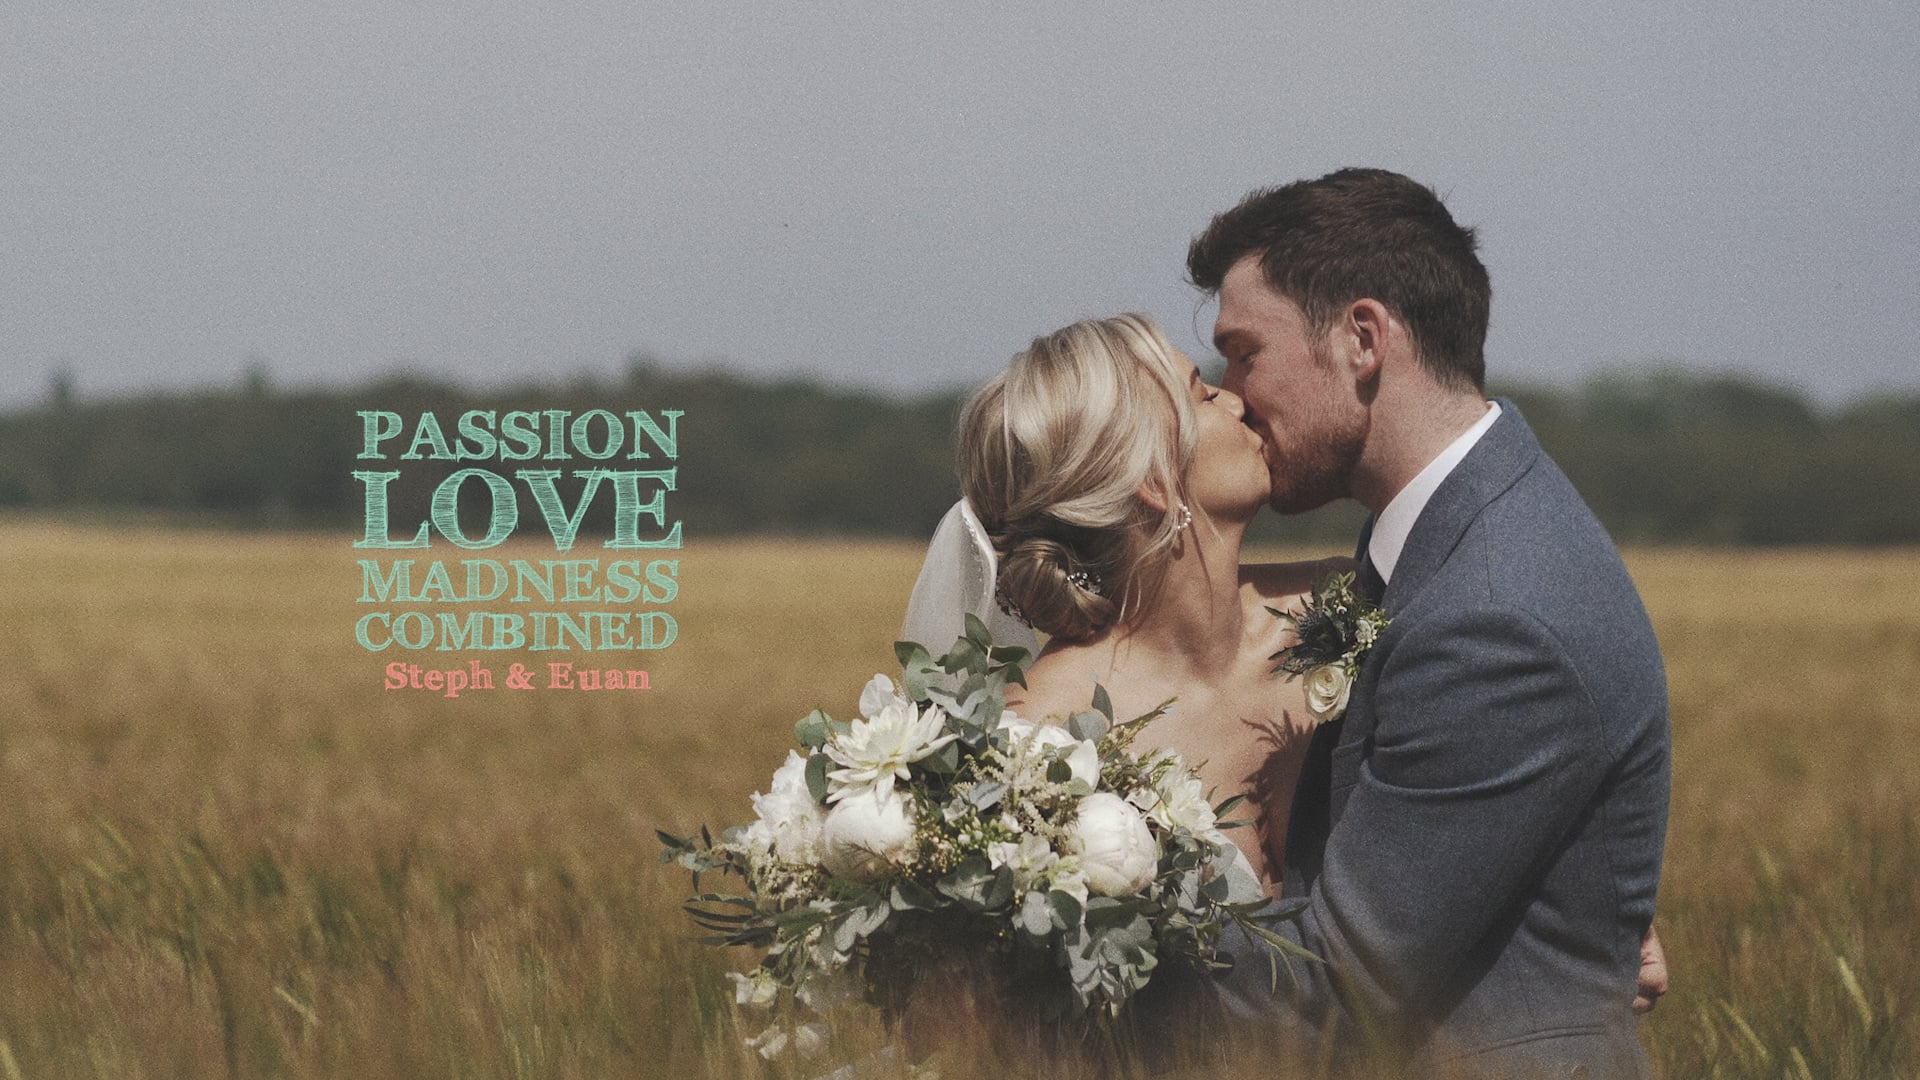 Passion Love Madness Combined by Steph and Euan